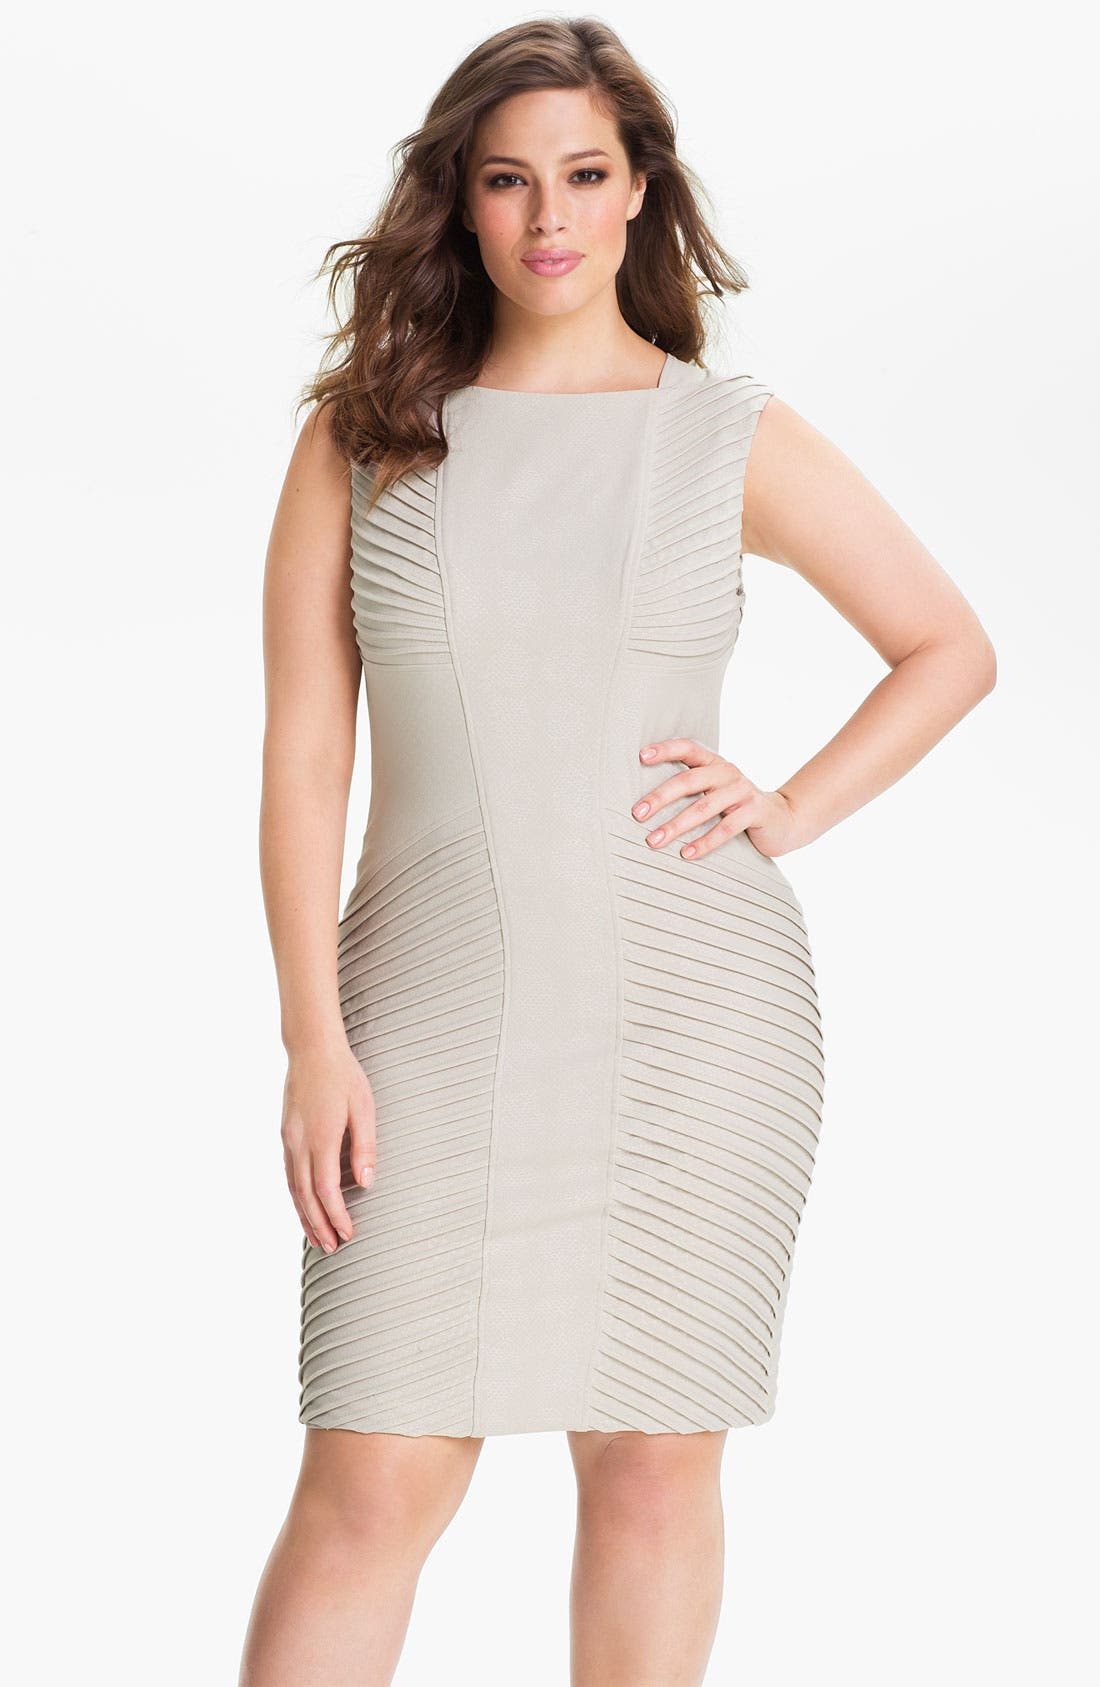 Alternate Image 1 Selected - Adrianna Papell Sleeveless Tucked Sheath Dress (Plus)